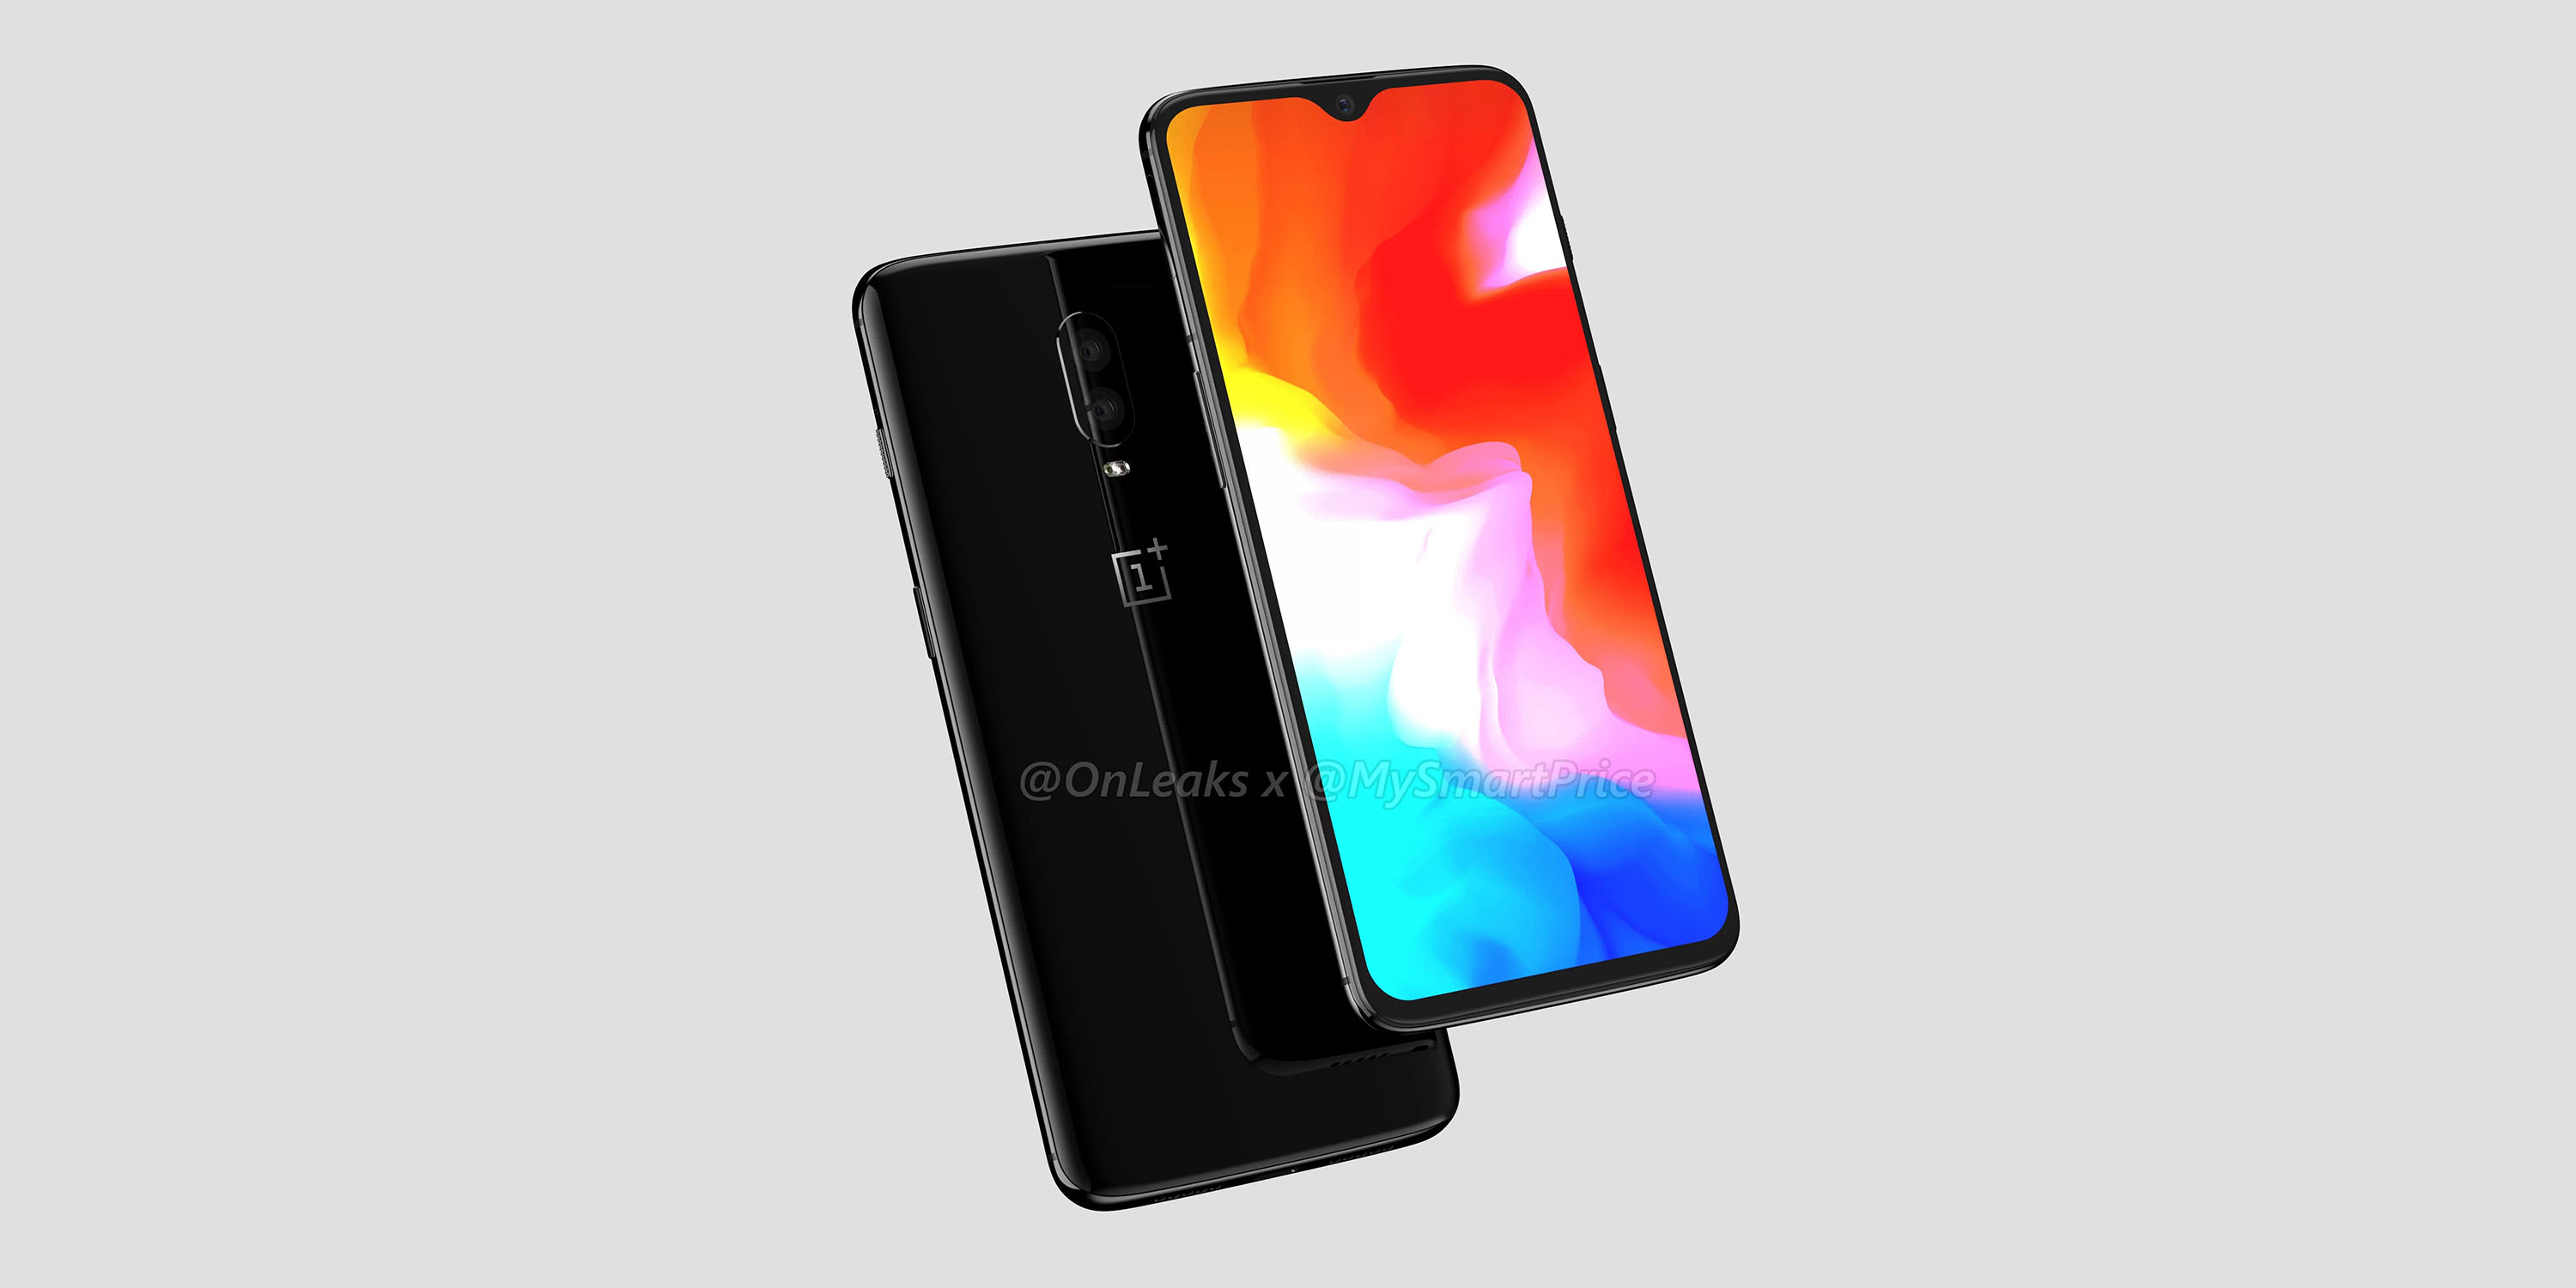 oneplus 6t rumor roundup pricing fingerprint sensor specs and everything we know so far